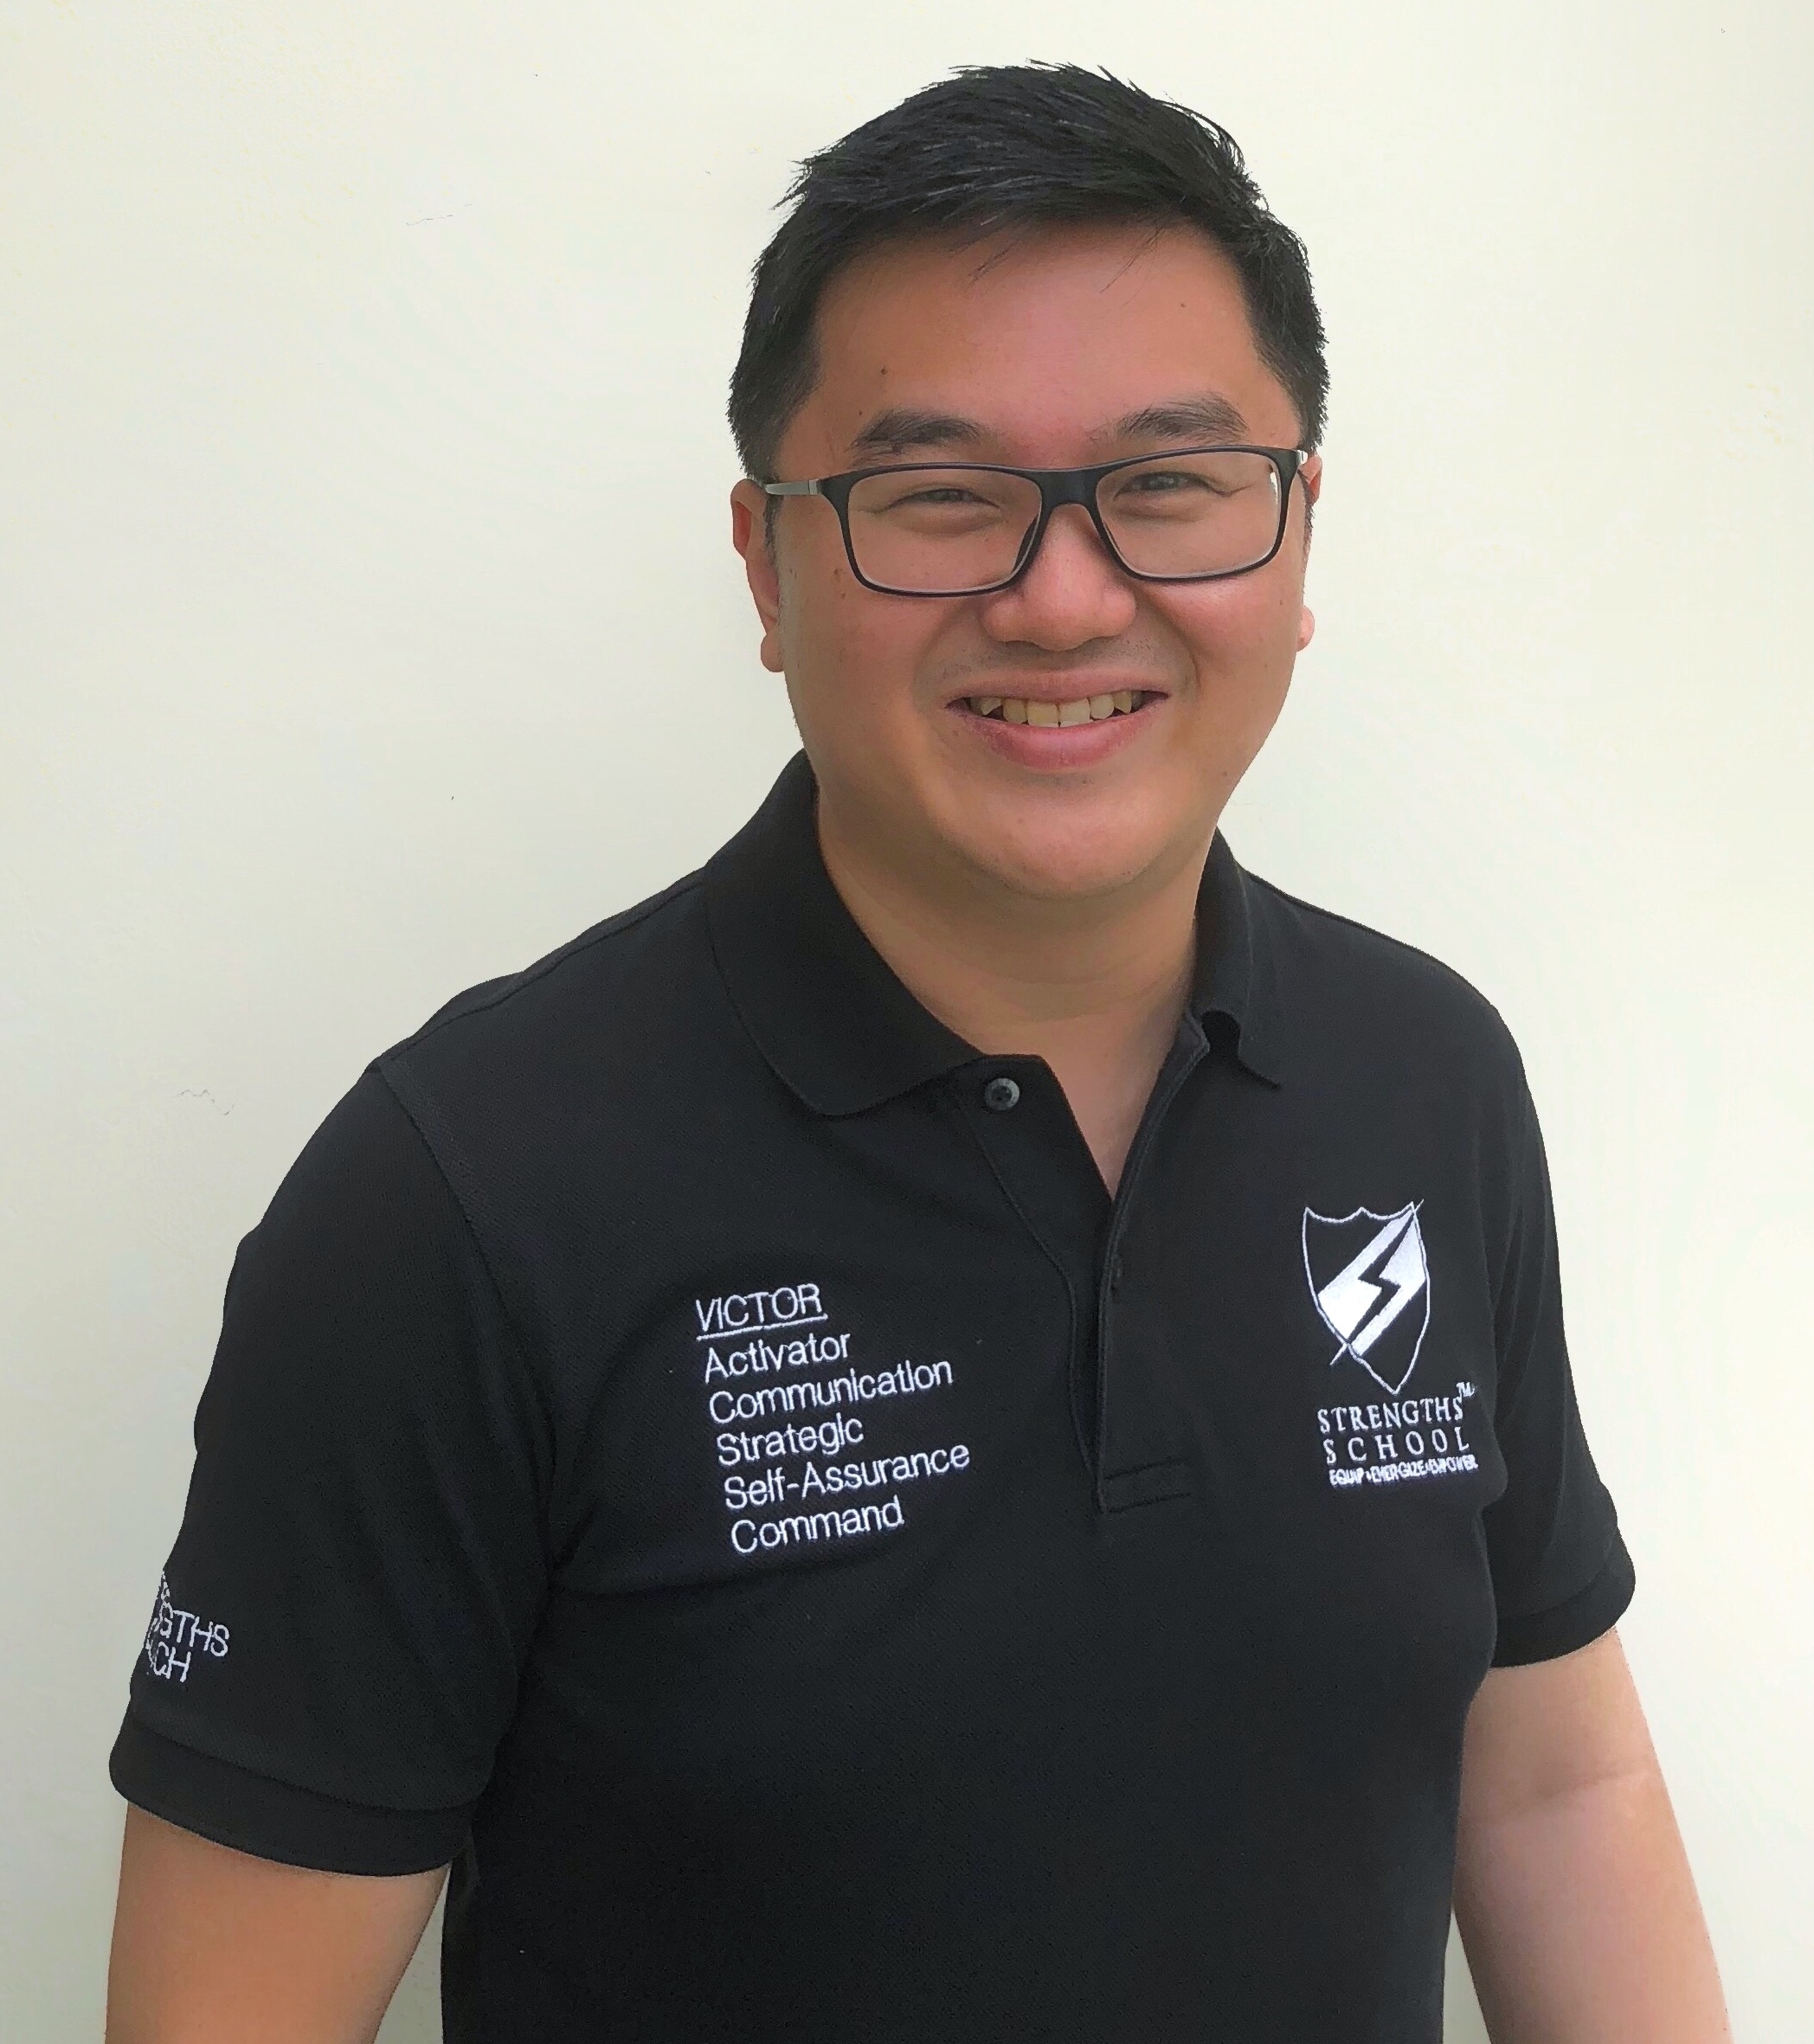 Victor Seet Strengths School Education Sector Singapore StrengthsFinder CliftonStrengths